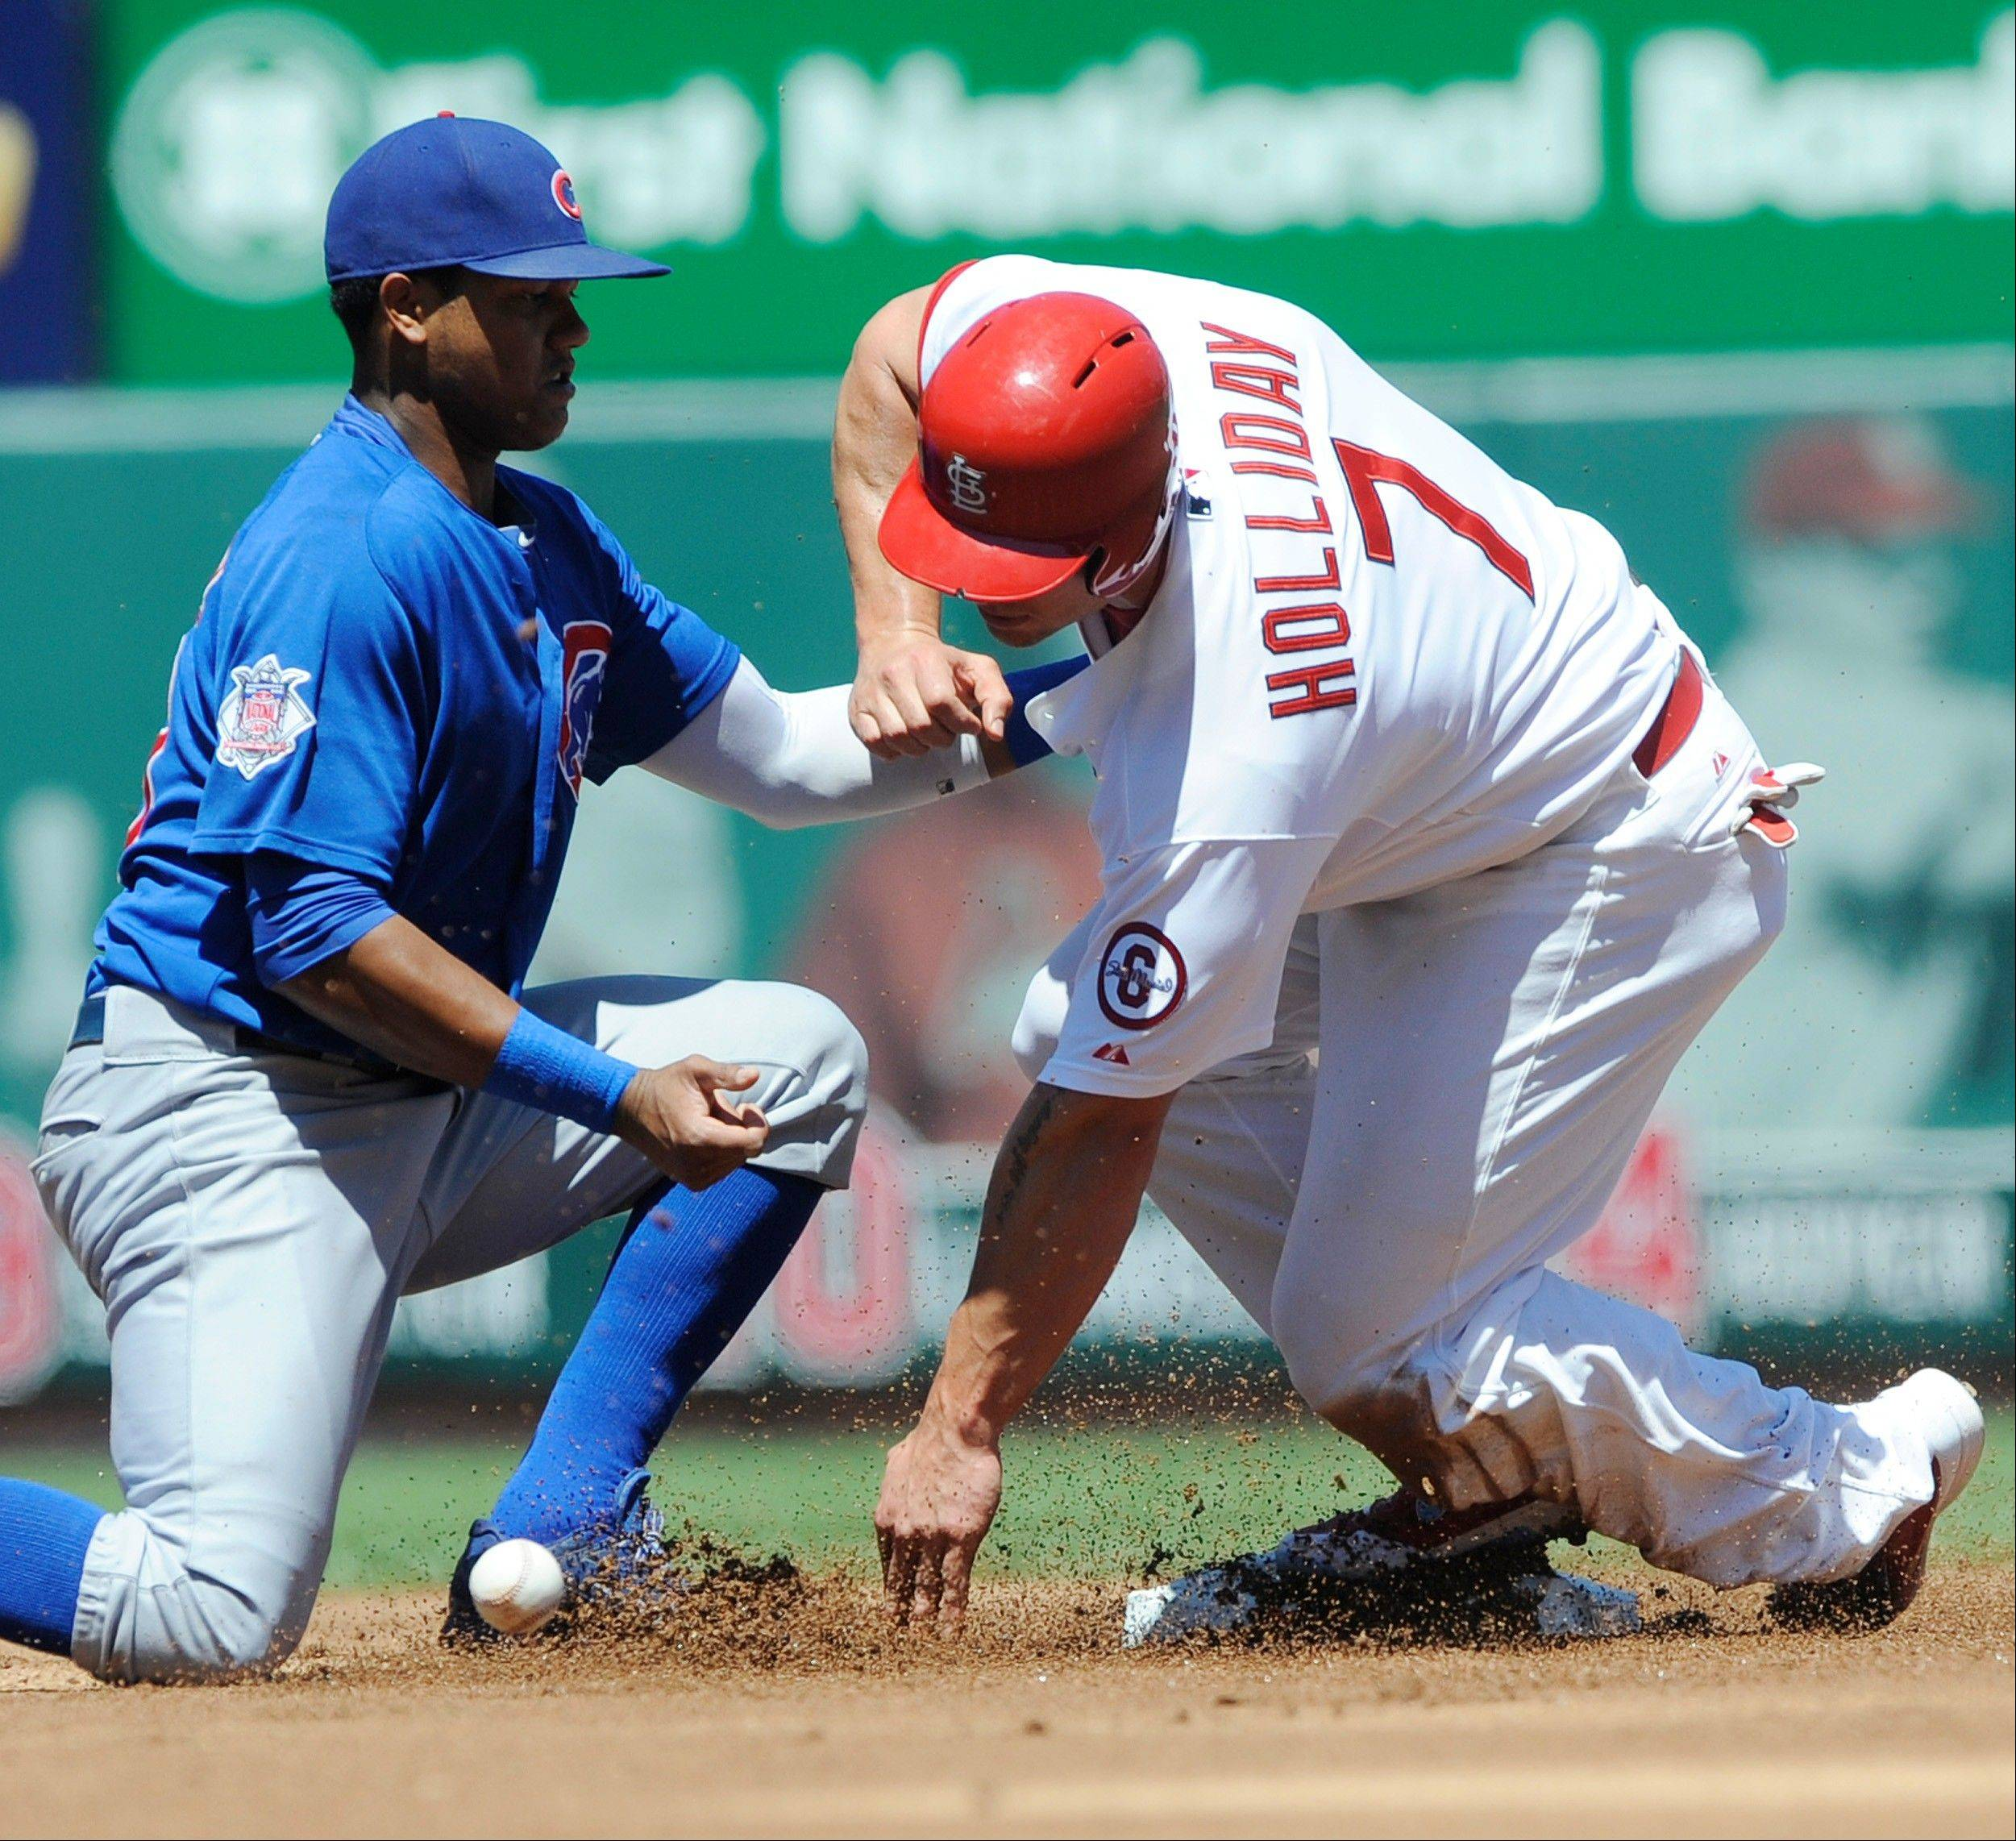 The St. Louis Cardinals� Matt Holliday steals second as the Cubs� Starlin Castro, left, cannot make the tag in Sunday�s first inning at Busch Stadium.